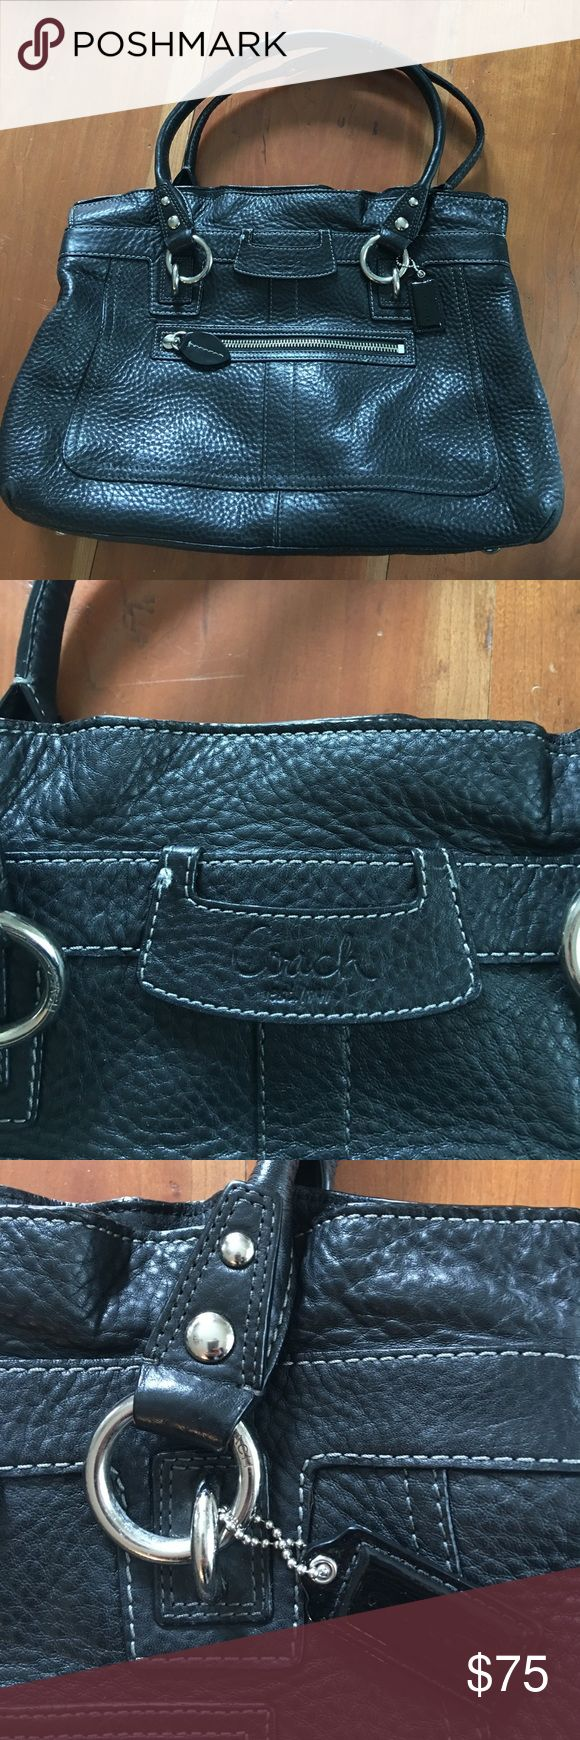 """Black Coach Leather Bag Excellent, condition. Fun """"ruffle"""" effect on top of bag. Exterior shows little to no wear, interior black and white stripe silk shows some light staining/wear. Coach Bags Shoulder Bags"""